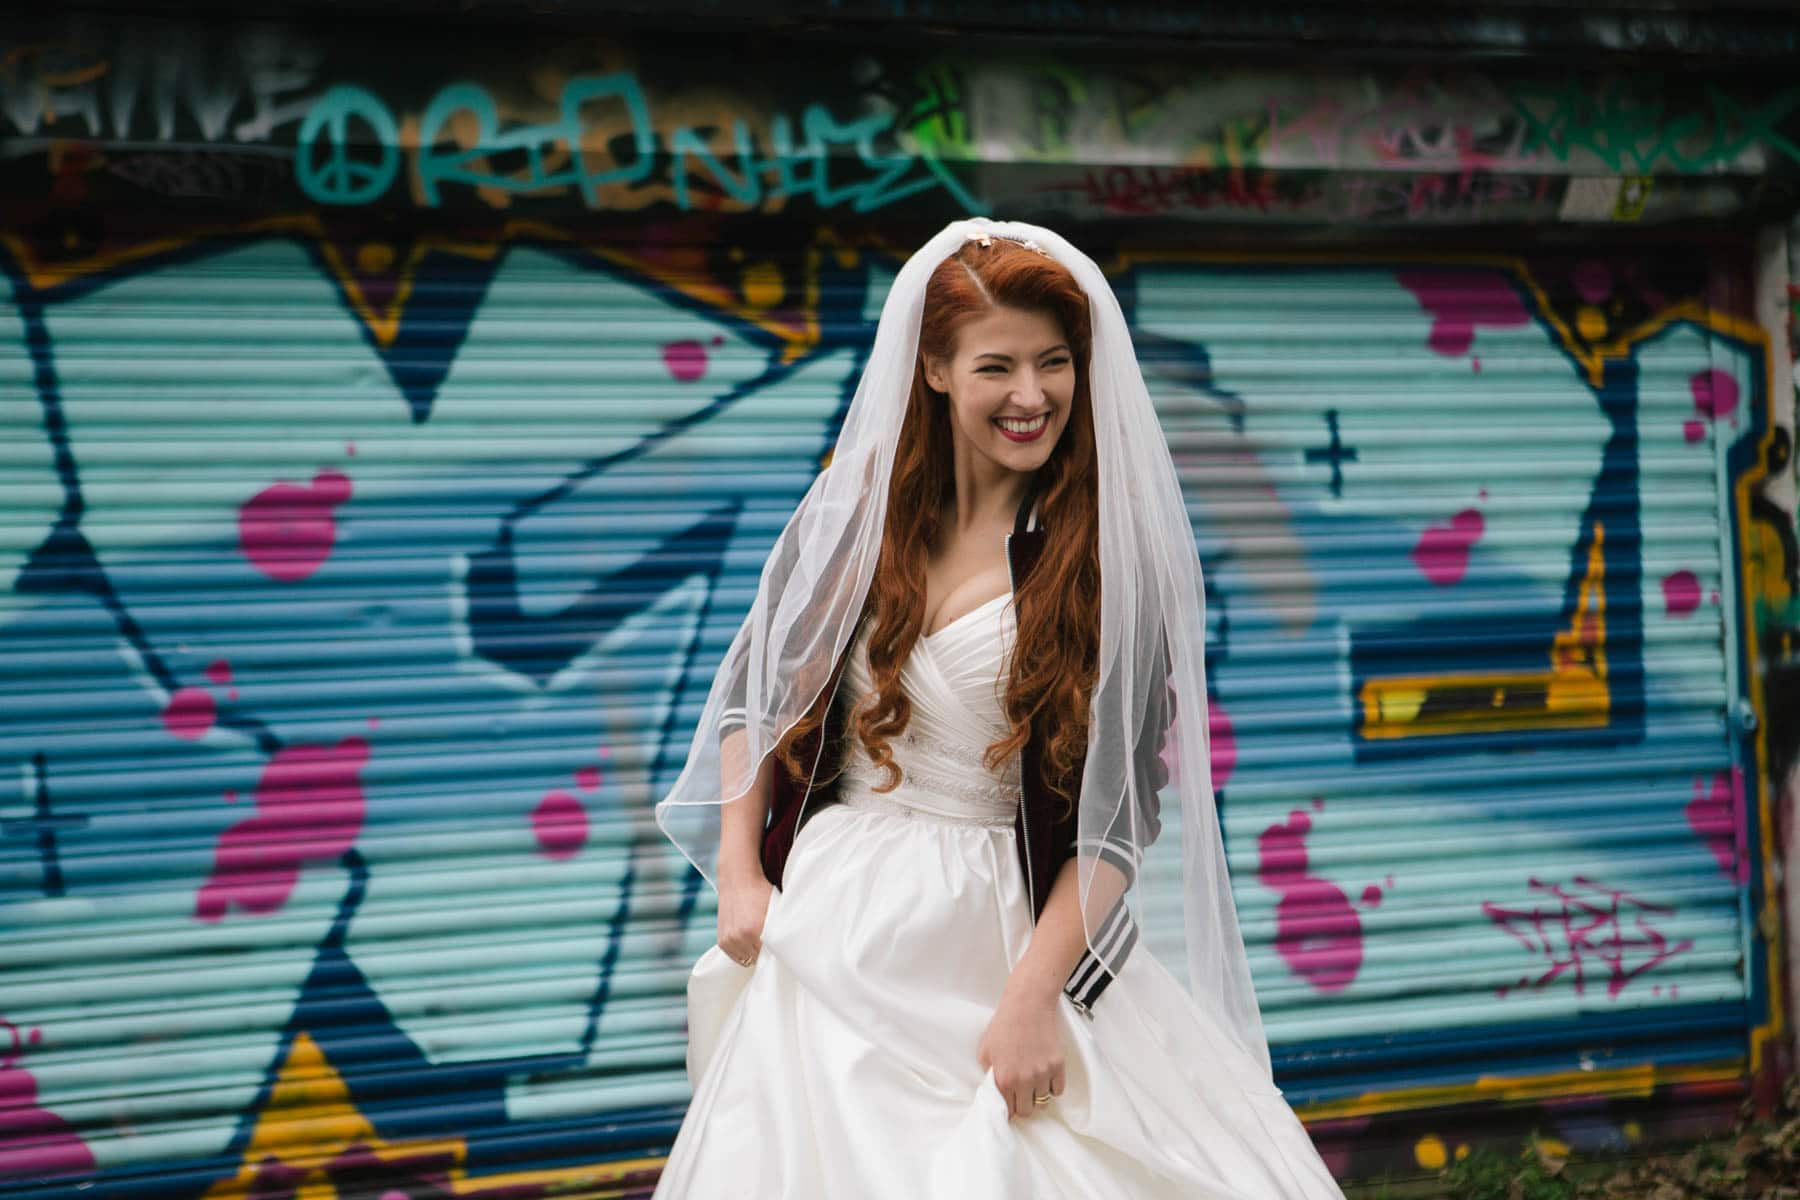 Bridal portrait of Jessica Kellgren-Fozard in front of colourful mural